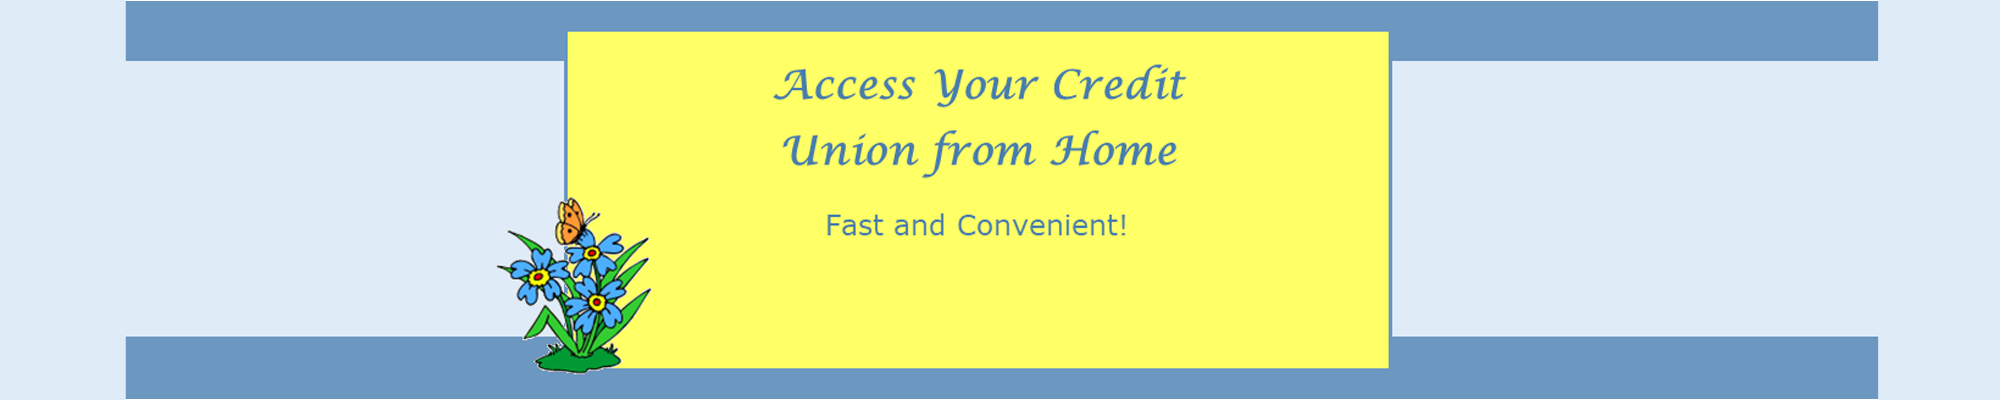 Access CU from Home